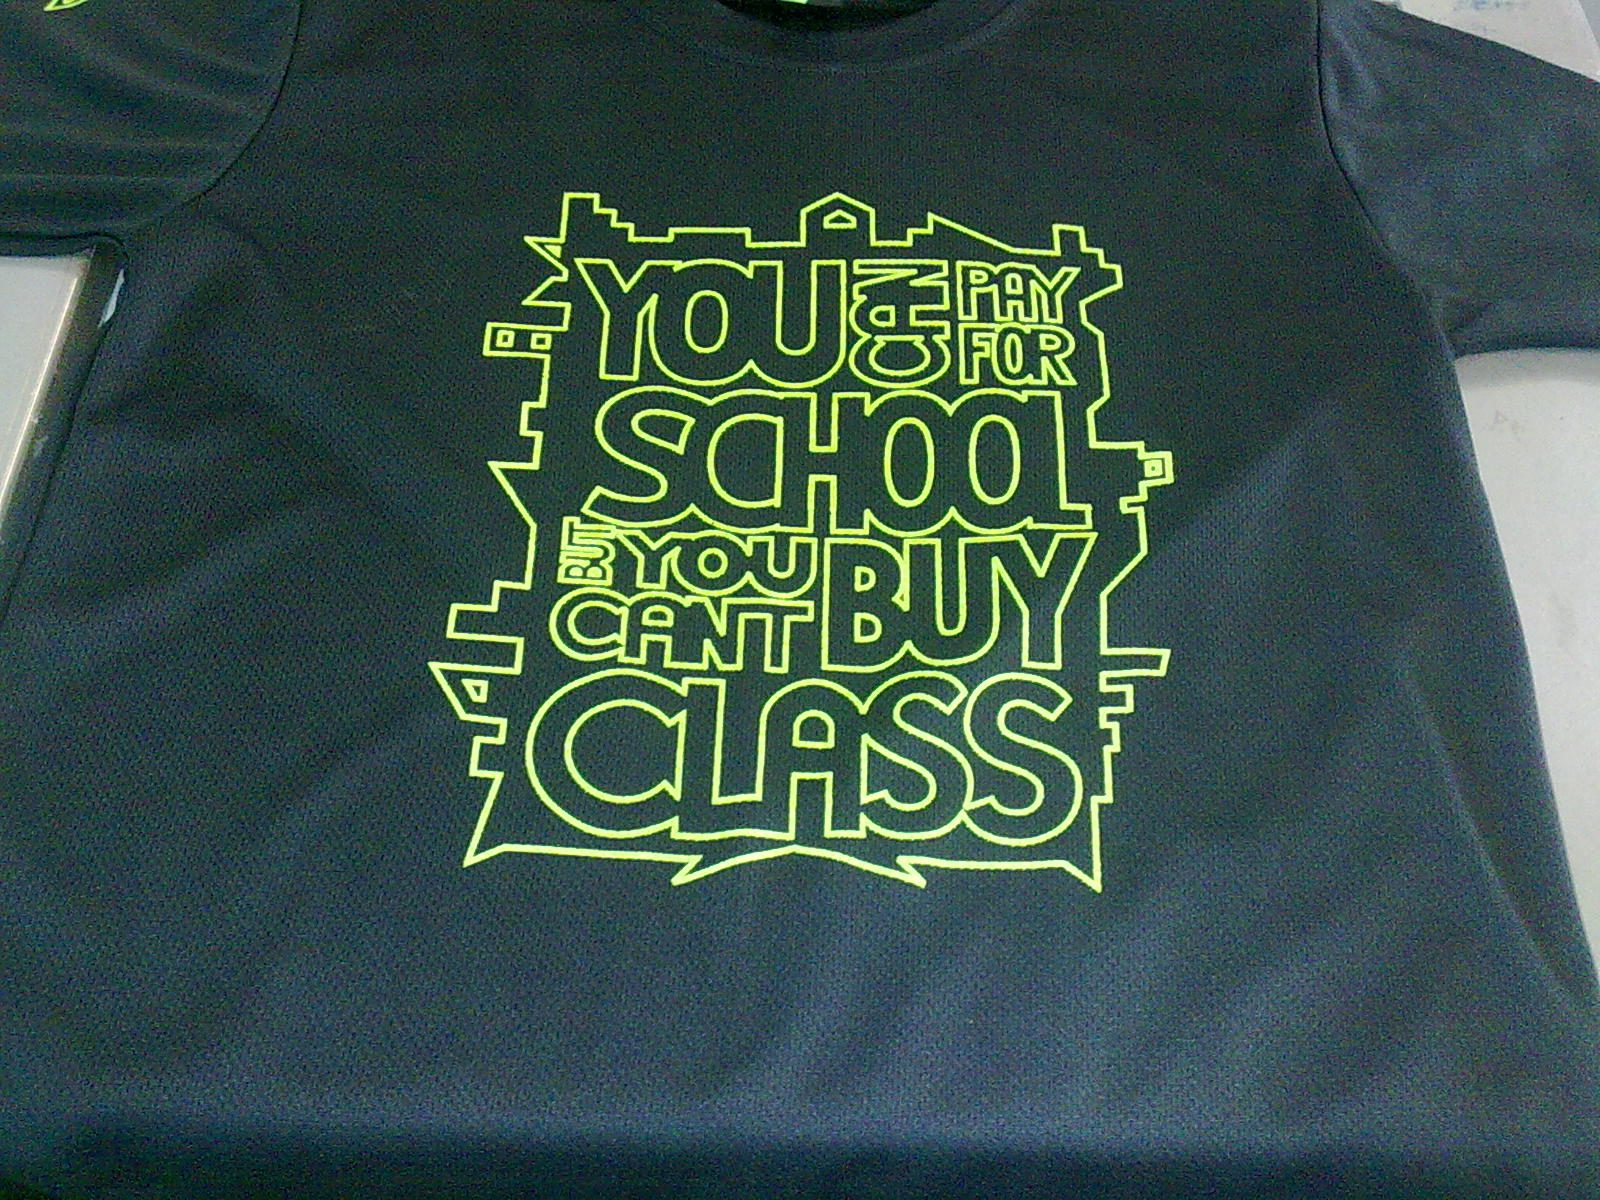 T shirt design jquery - Design T Shirt For Class Today Our Class Get Our Class T Shirt The Design